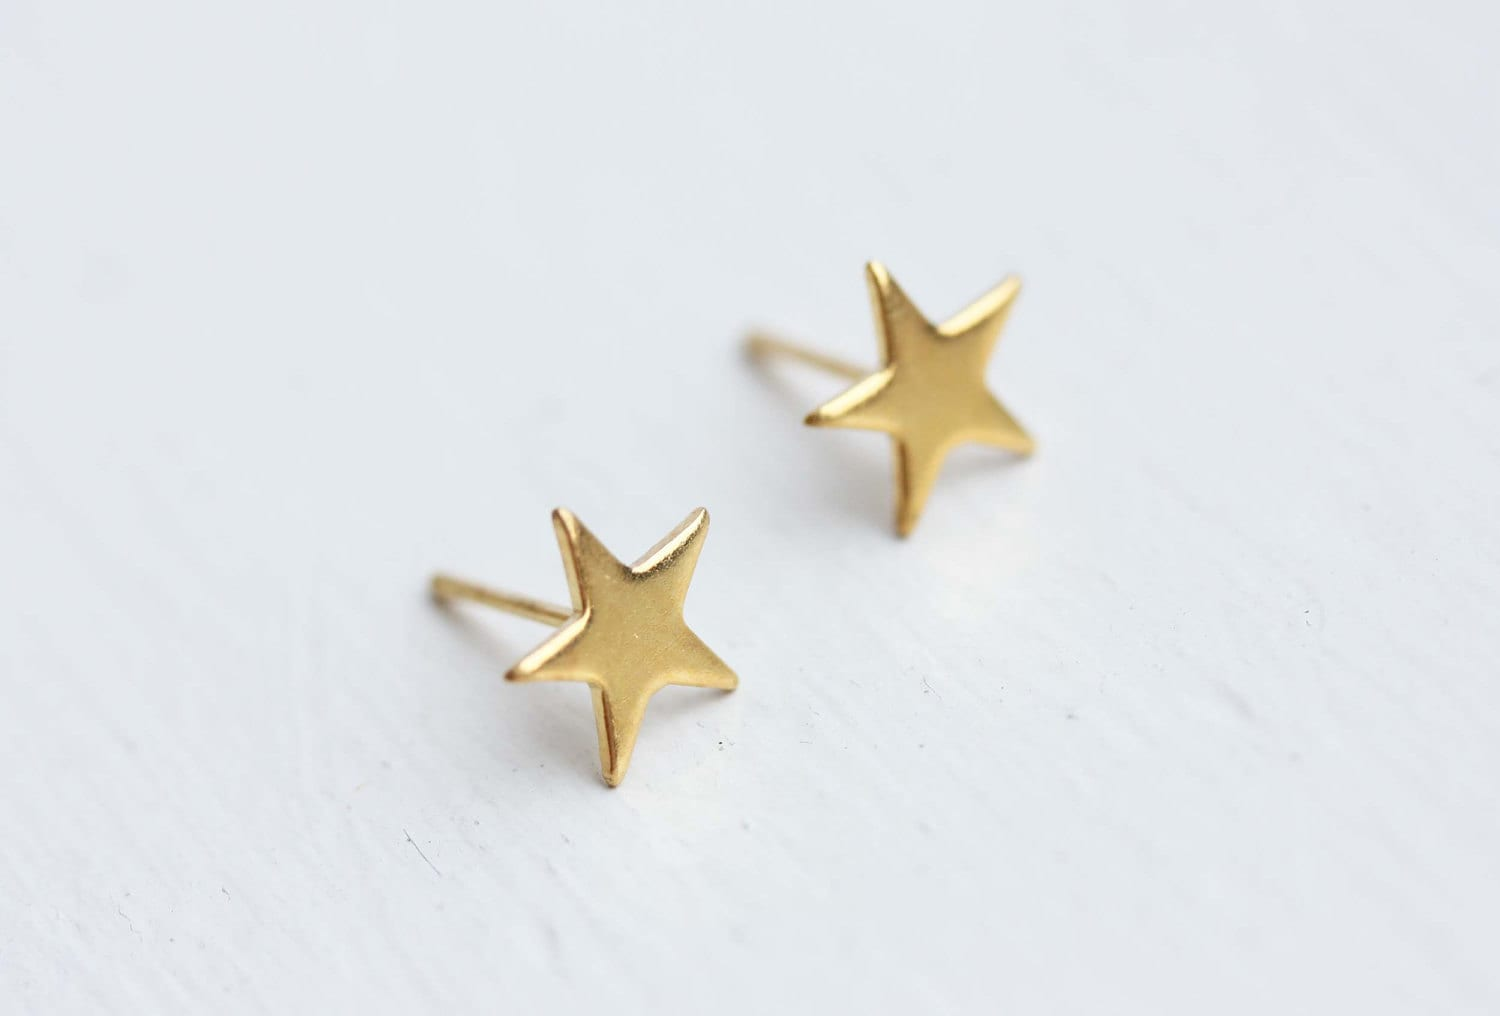 Star Studs Gold Small Star Studs Gold Star Earrings Small